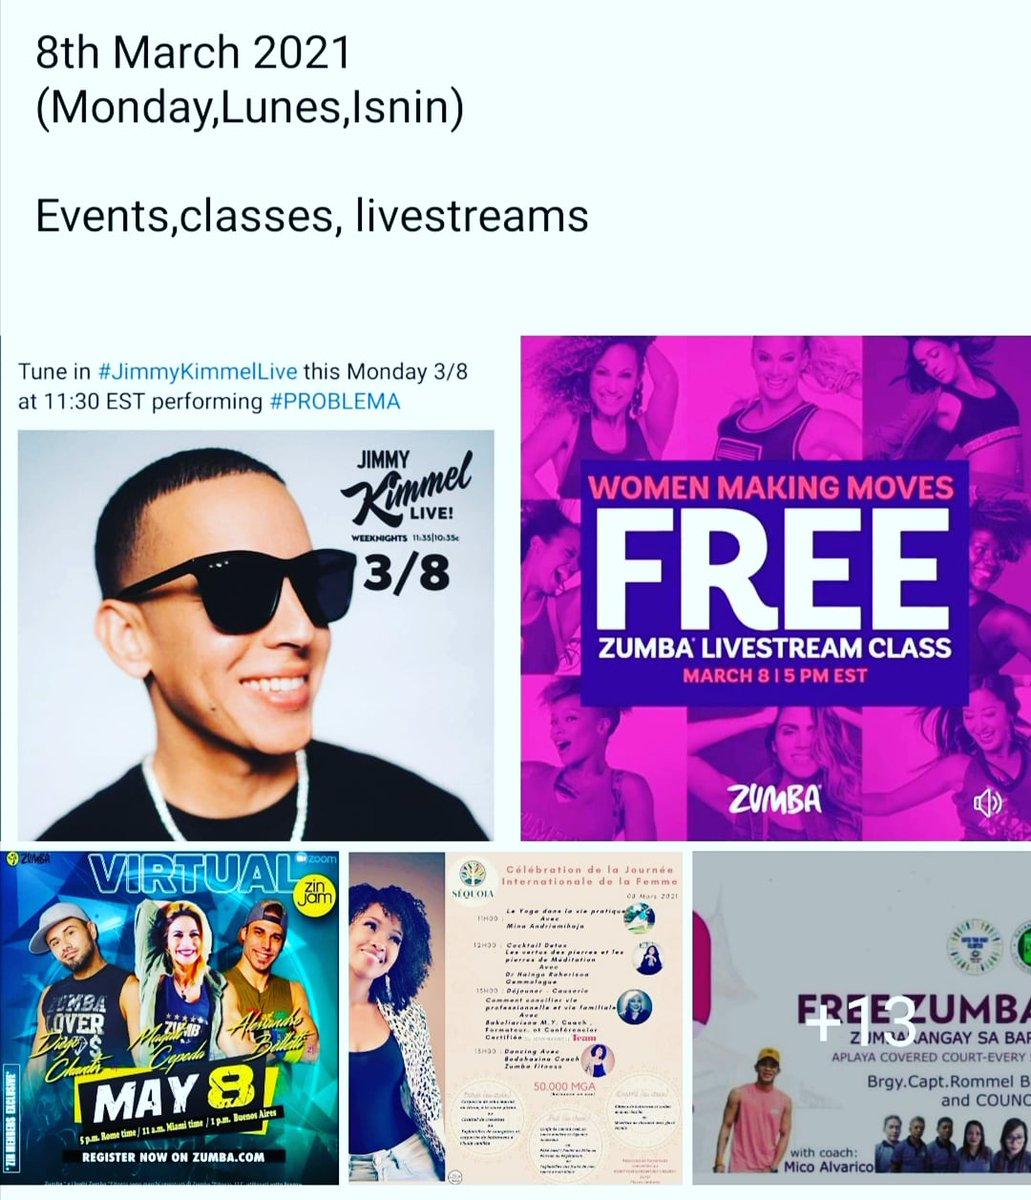 8th March 2021 ( Monday, Lunes, Isnin )  Events, classes, livestreams, trainings    #08032021 #Monday #Isnin #lunes #classes #online #zoom #virtual #zumba #ZJ  #dancefitness #fitness  #workout  #danceclass #partyathome #events #linlin  @linlinpartybabe